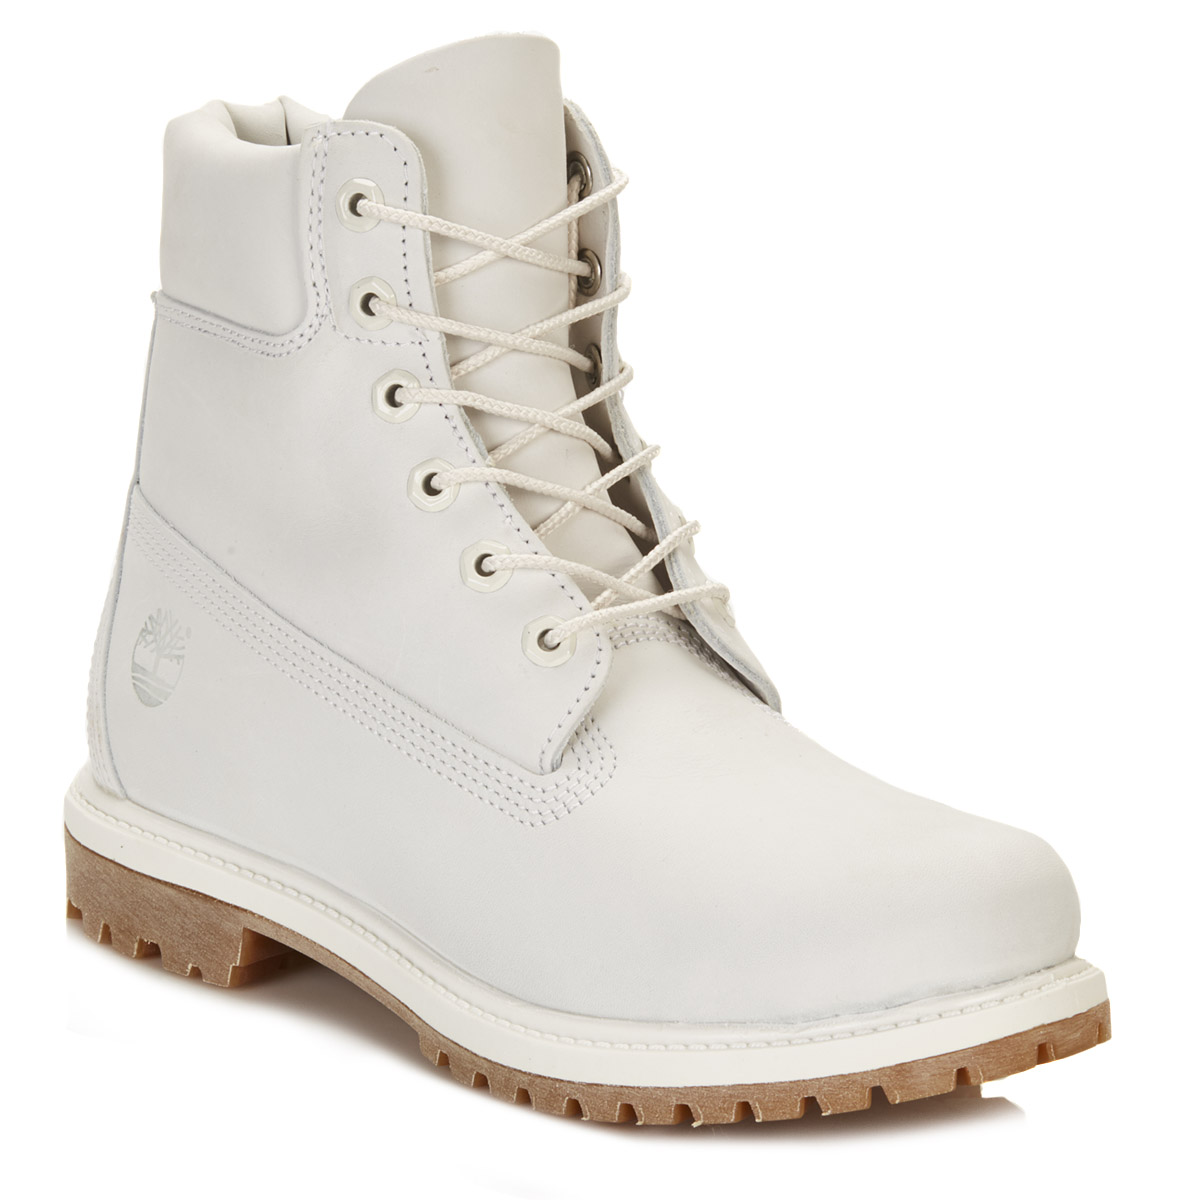 Unique  Boots  Timberland  Timberland Wheat Glancy 6 Inch Women39s Ankle